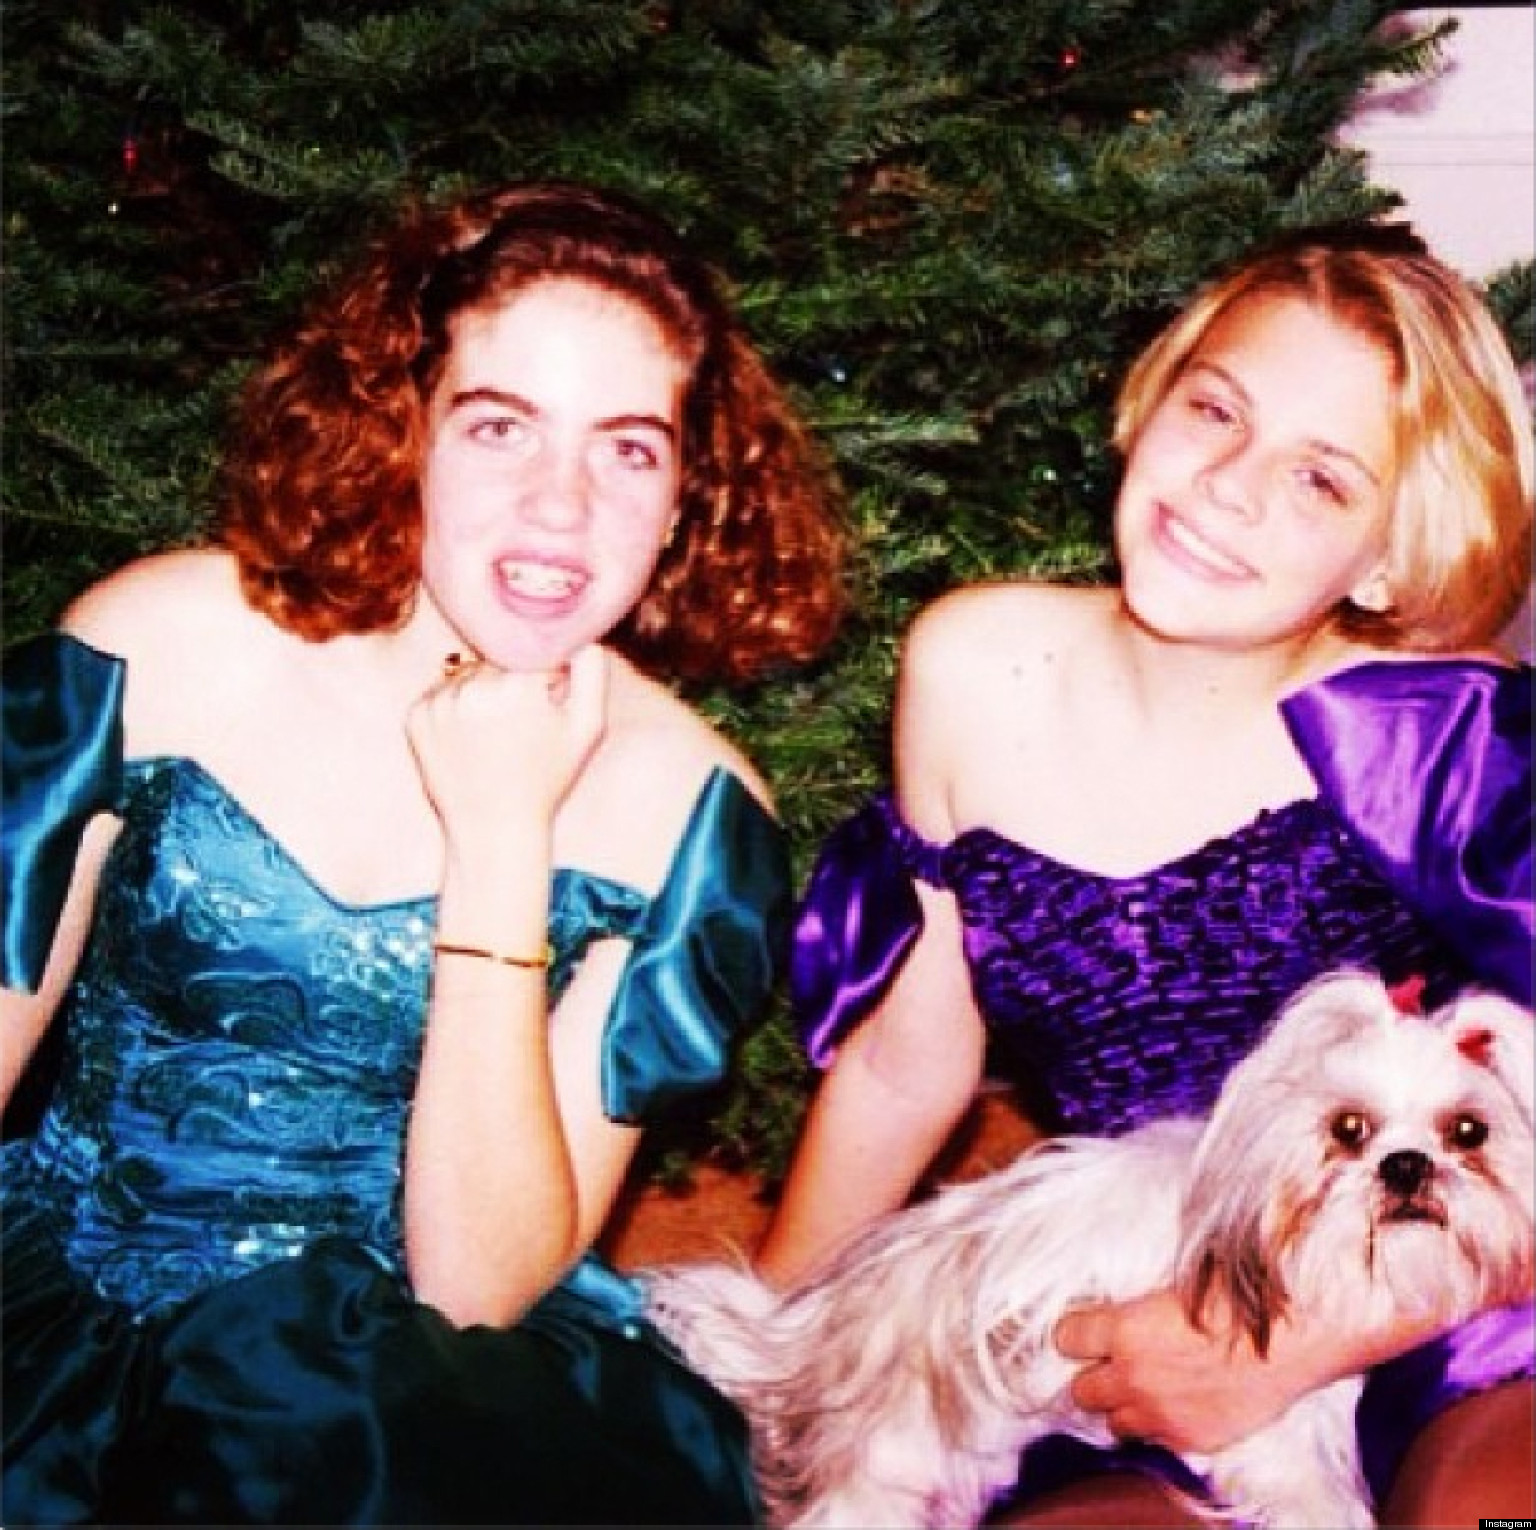 Busy Philipps' Instagram Photo For 'Throwback Thursday' Is